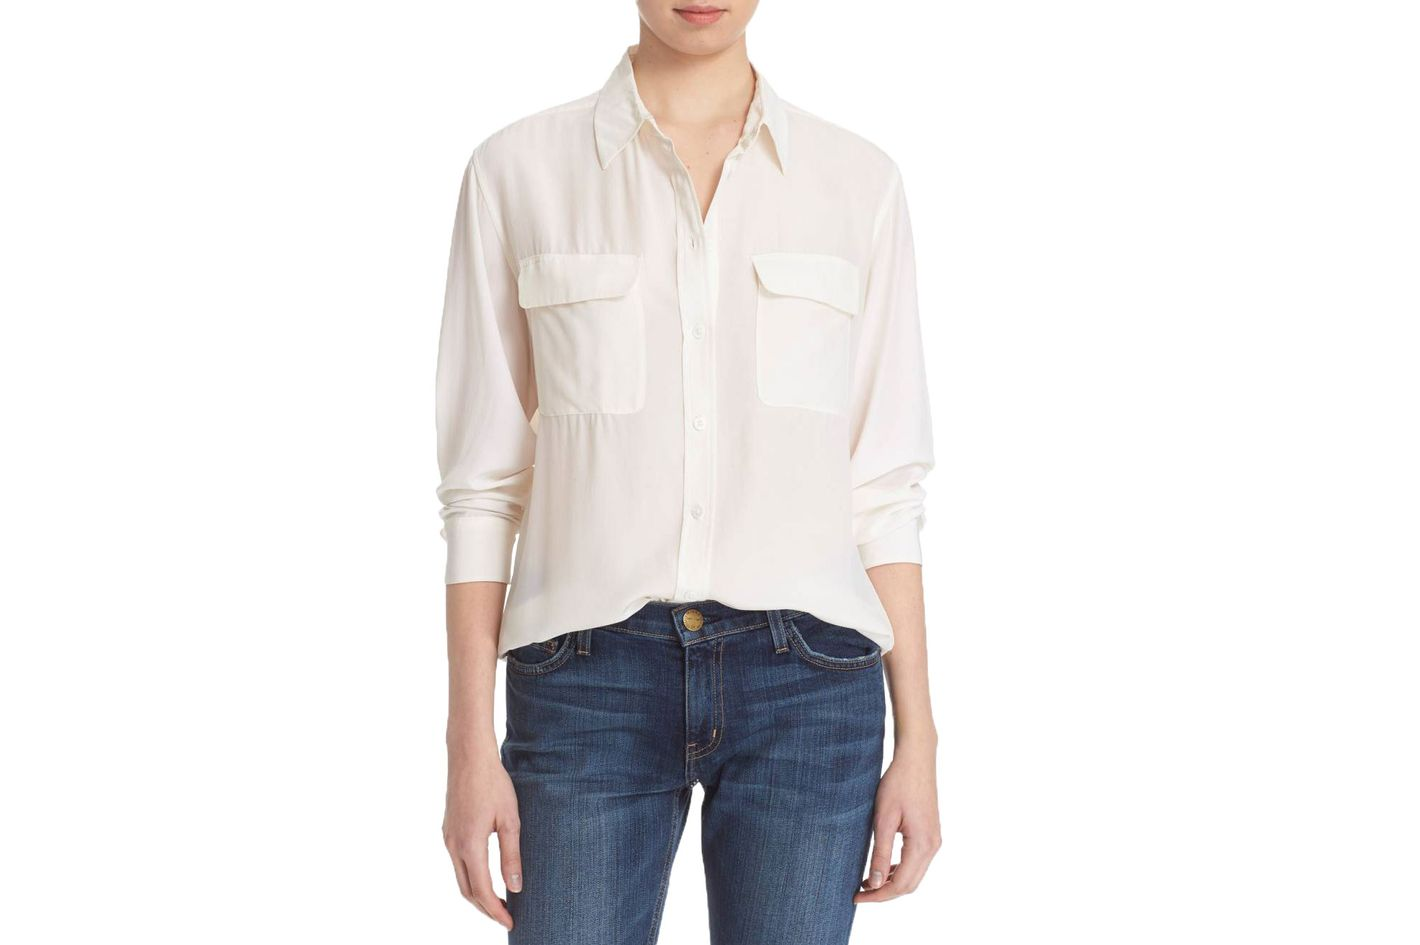 d2ab205bae1bc Best White Button-down Shirts for Women